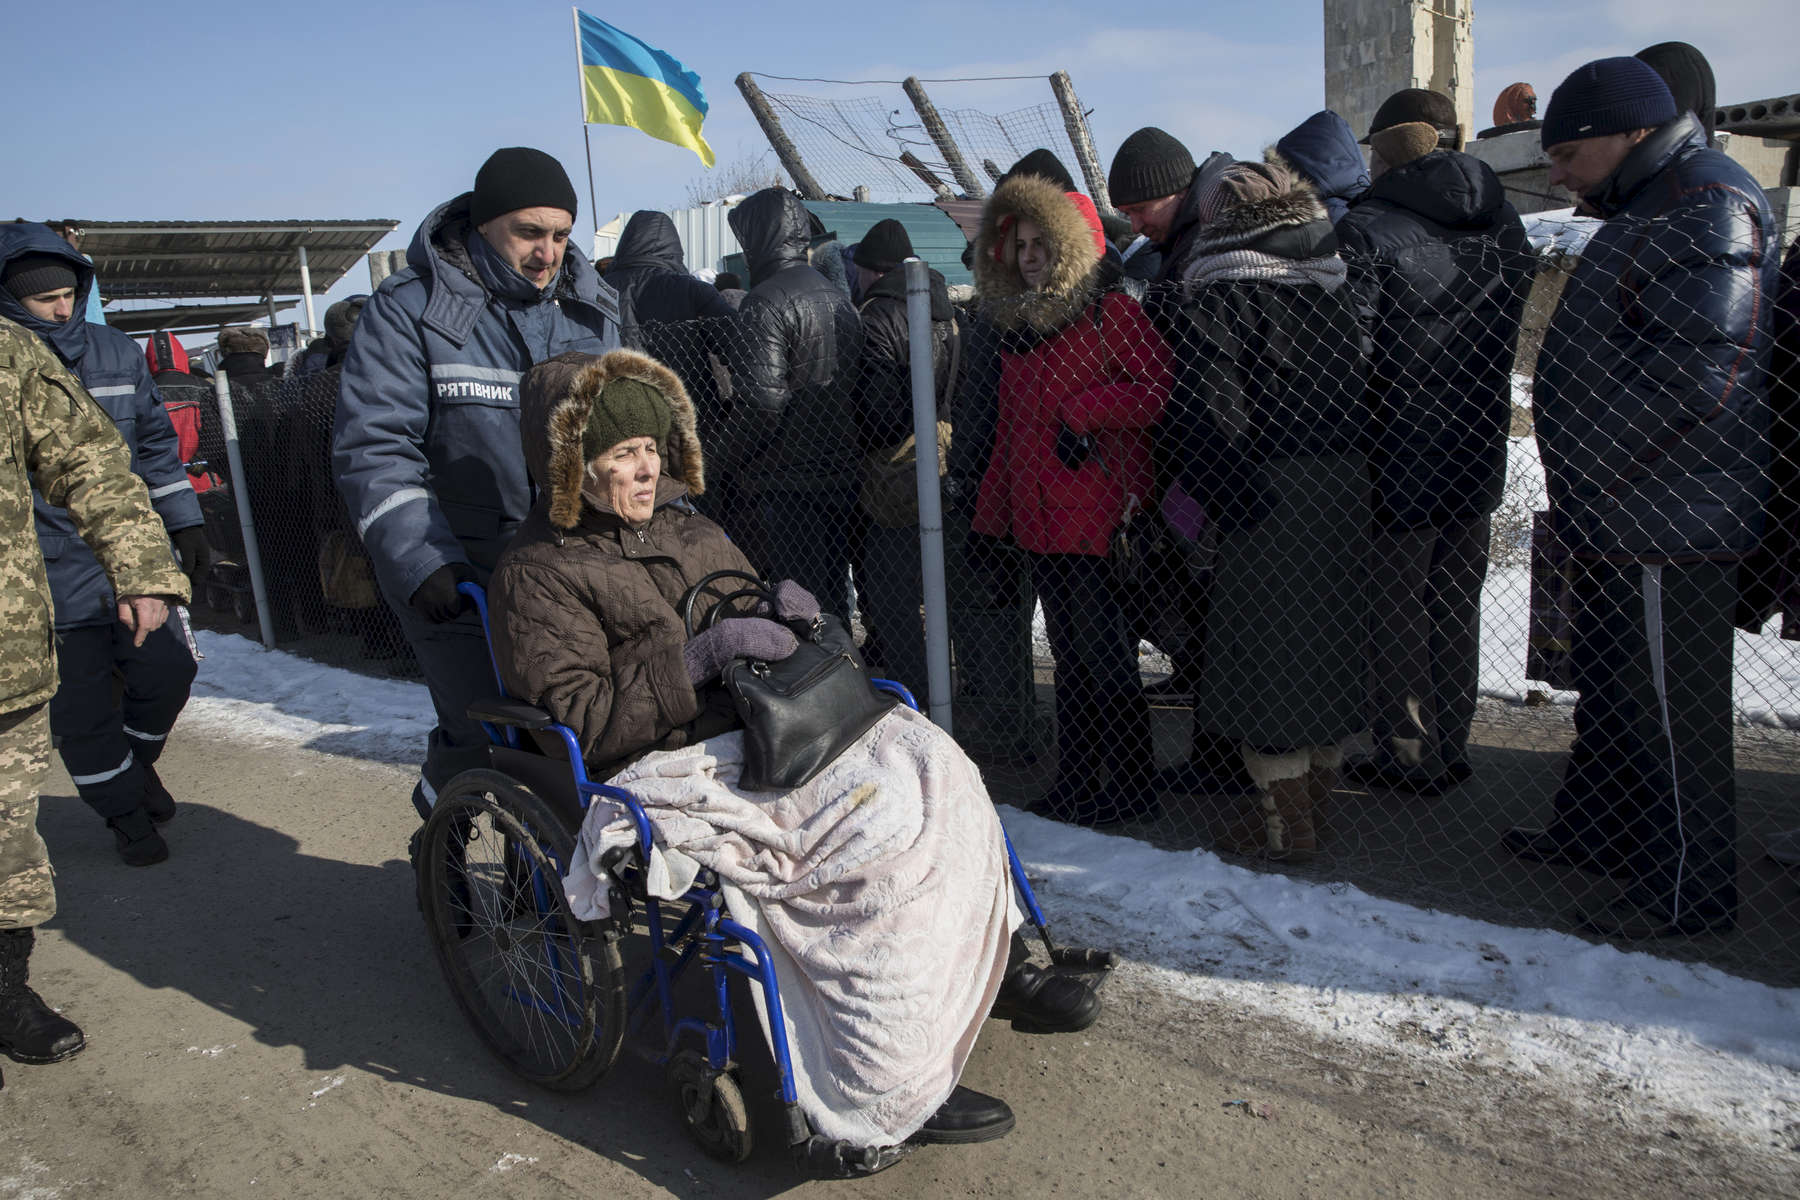 Luhansk,Eastern Ukraine: An elderly woman gets help via a wheelchair as she crosses into the border area from Eastern Ukraine to Luhansk, for many this is a real burden making the journey to collect their pension.After more than four years of war the armed conflict in eastern Ukraine has a human toll that is staggering. The war has displaced more than 1.6 million with over 2,500 civilians killed and 9,000 injured. Some 200,000 people live under constant fear of shelling every day, with nearly a third of the 3.4 million people in need of humanitarian assistance over 60 years of age. Ukraine has the highest proportion of elderly affected by war in the world.